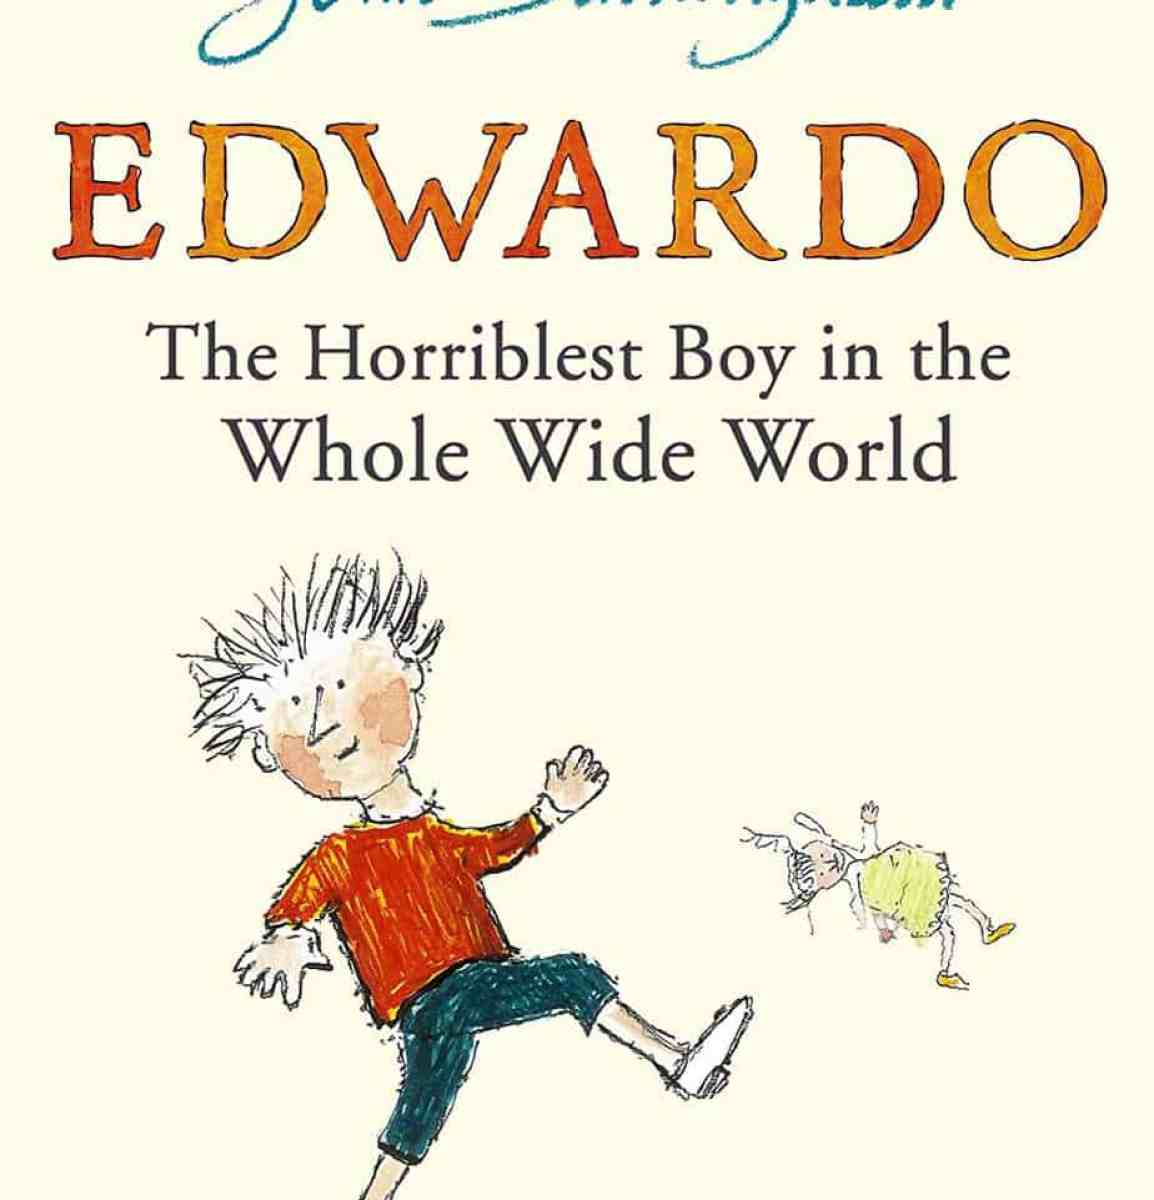 Edwardo The Horriblest Boy in the Whole Wide World John Burningham cover